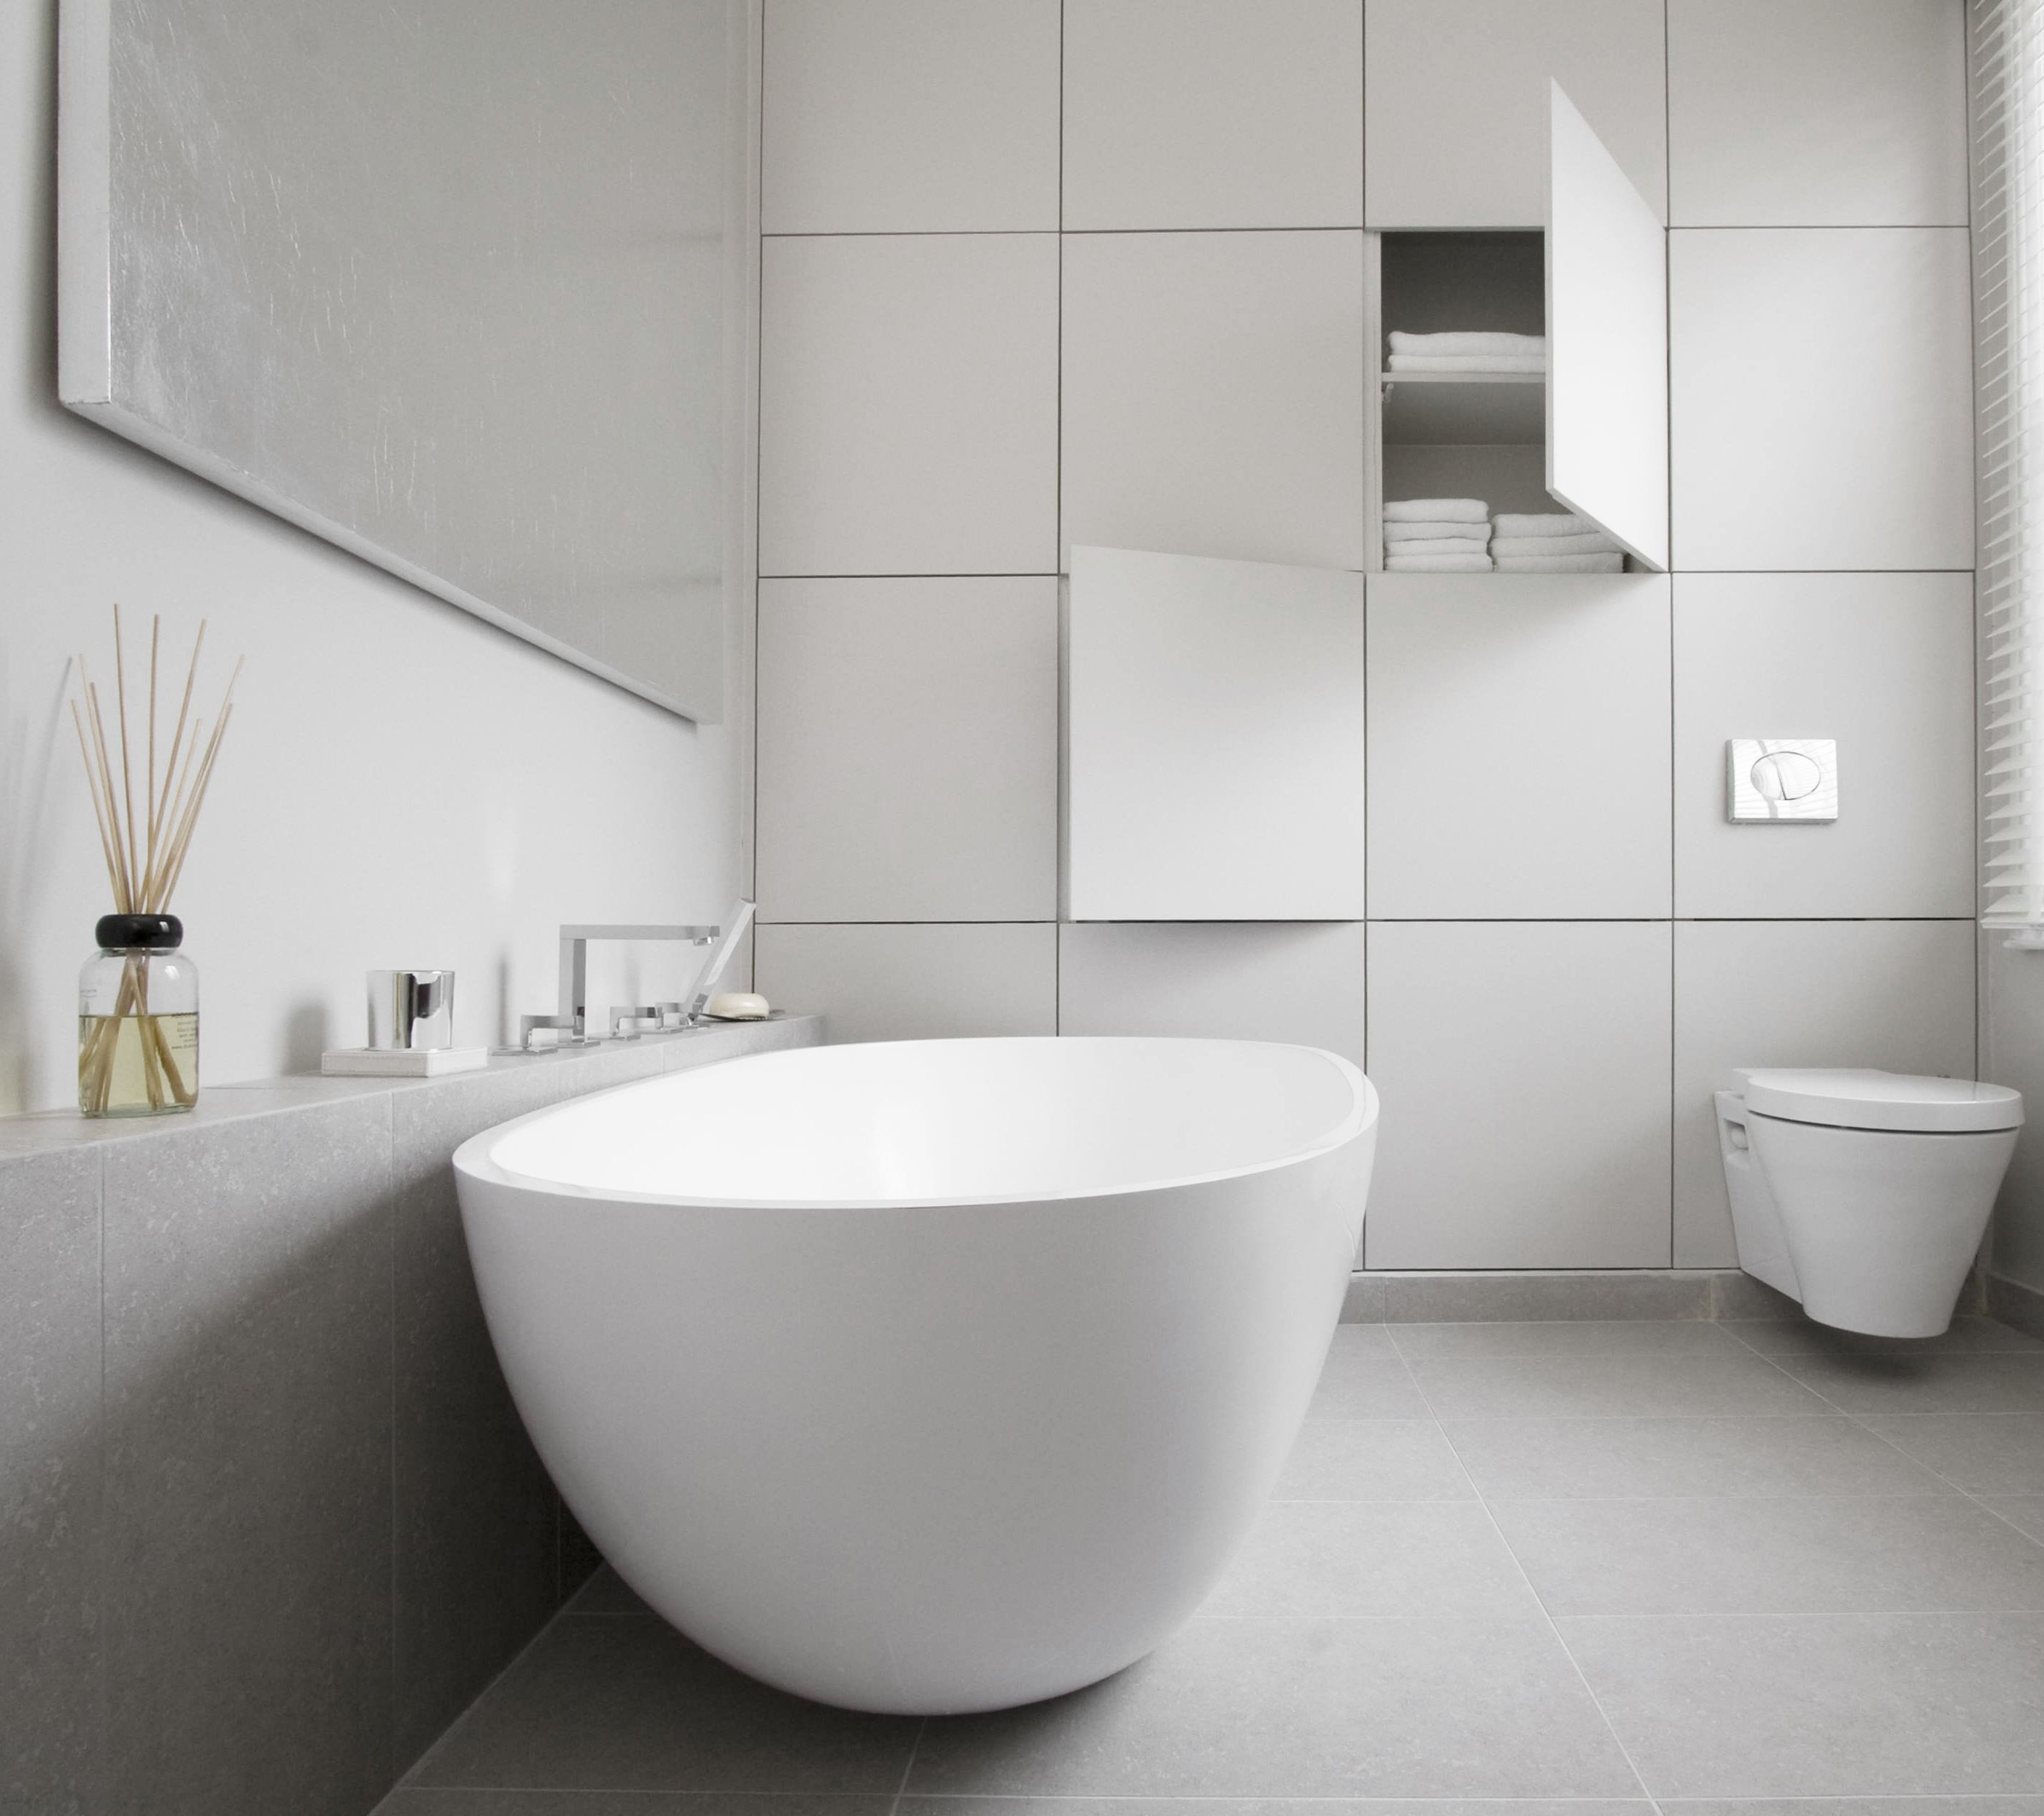 Armadi Per Bagni Sussex Town House Kianfar Revell Interior Design